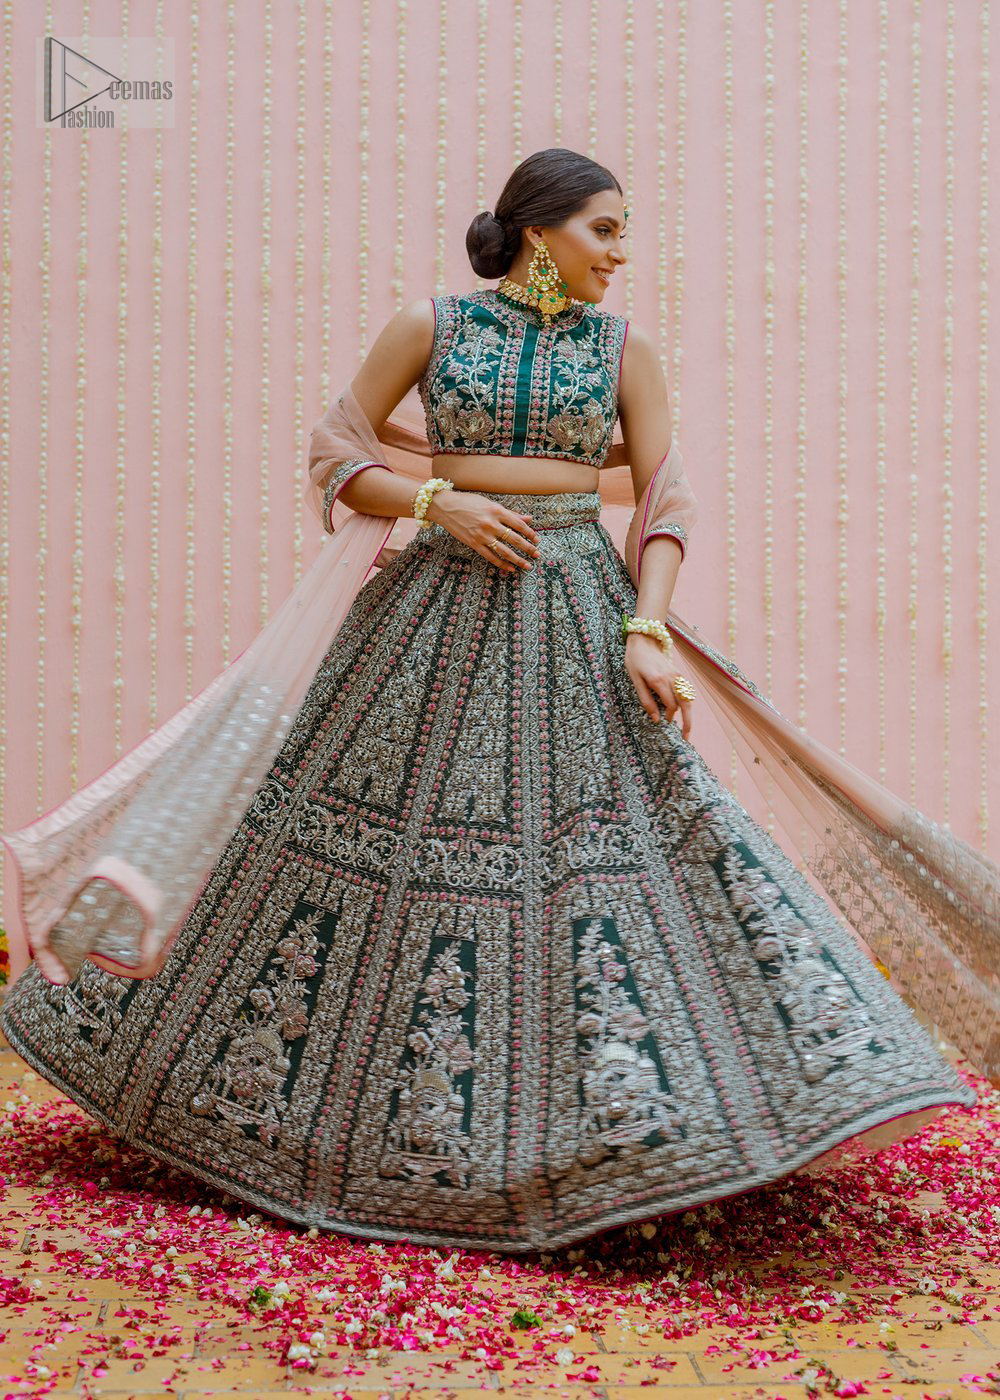 Bottle Green Velvet Blouse Lehenga Tan Dupatta. This dress is beautifully sculptured with floral embroidery, adorned with silver kora, dabka, pearl and sequins work all over.